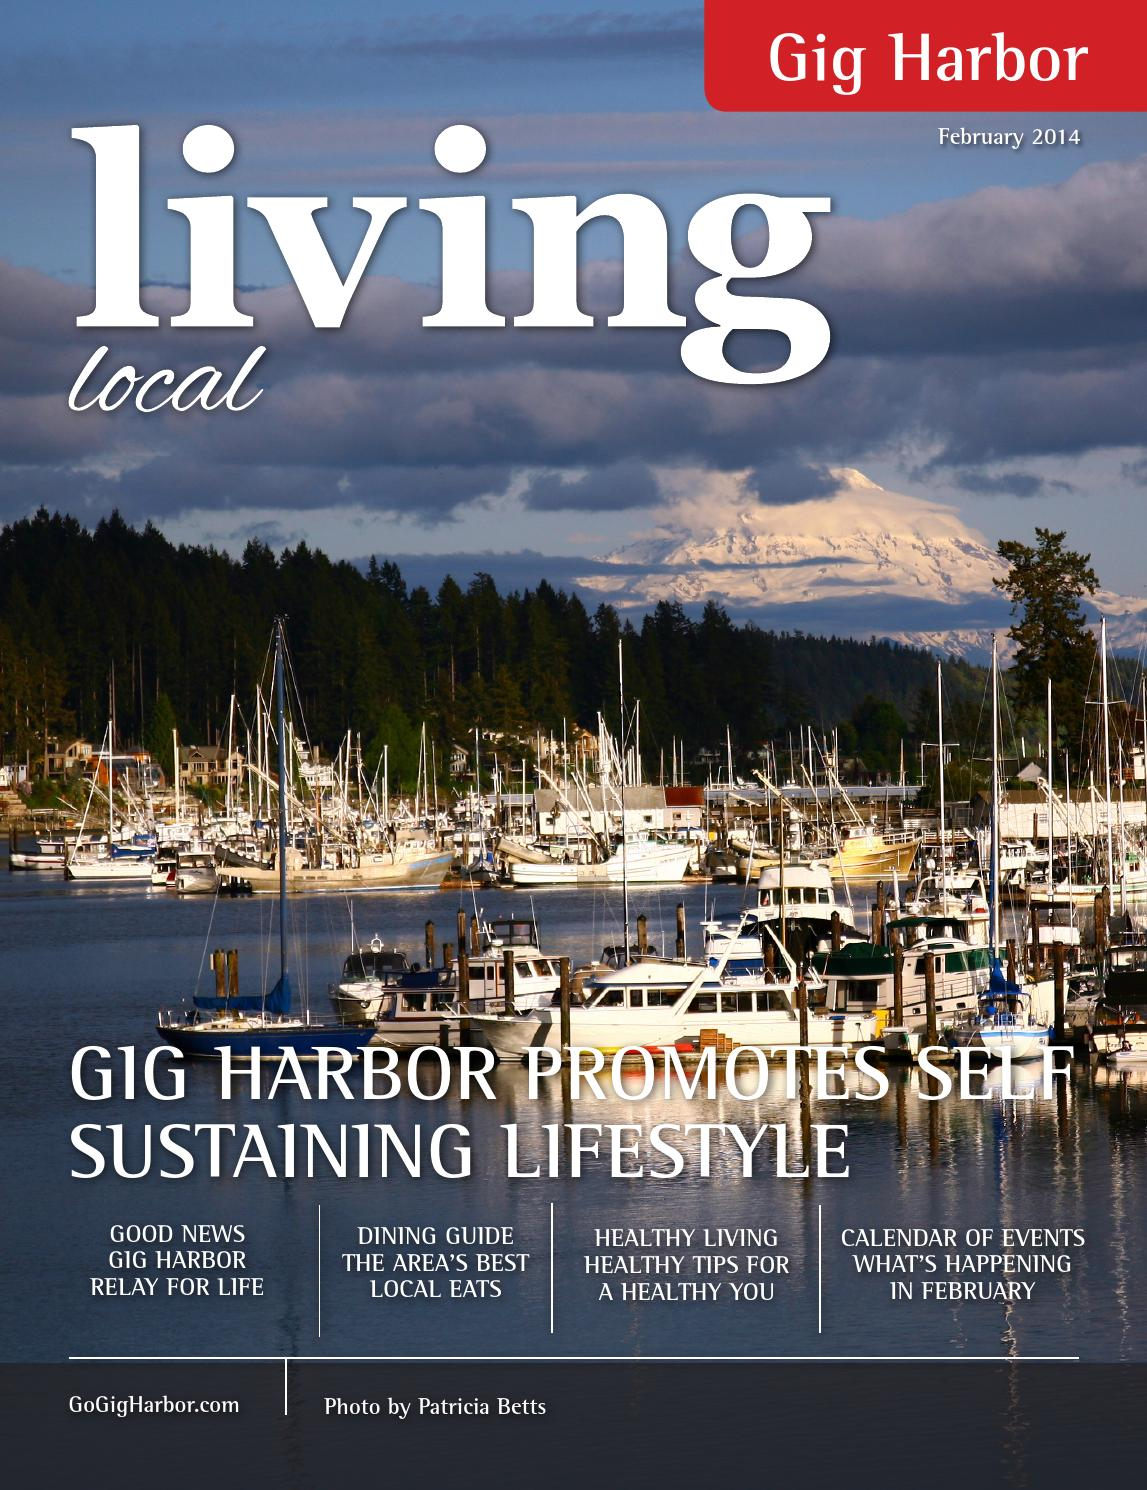 Gig harbor physical therapy - Gig Harbor Physical Therapy 55